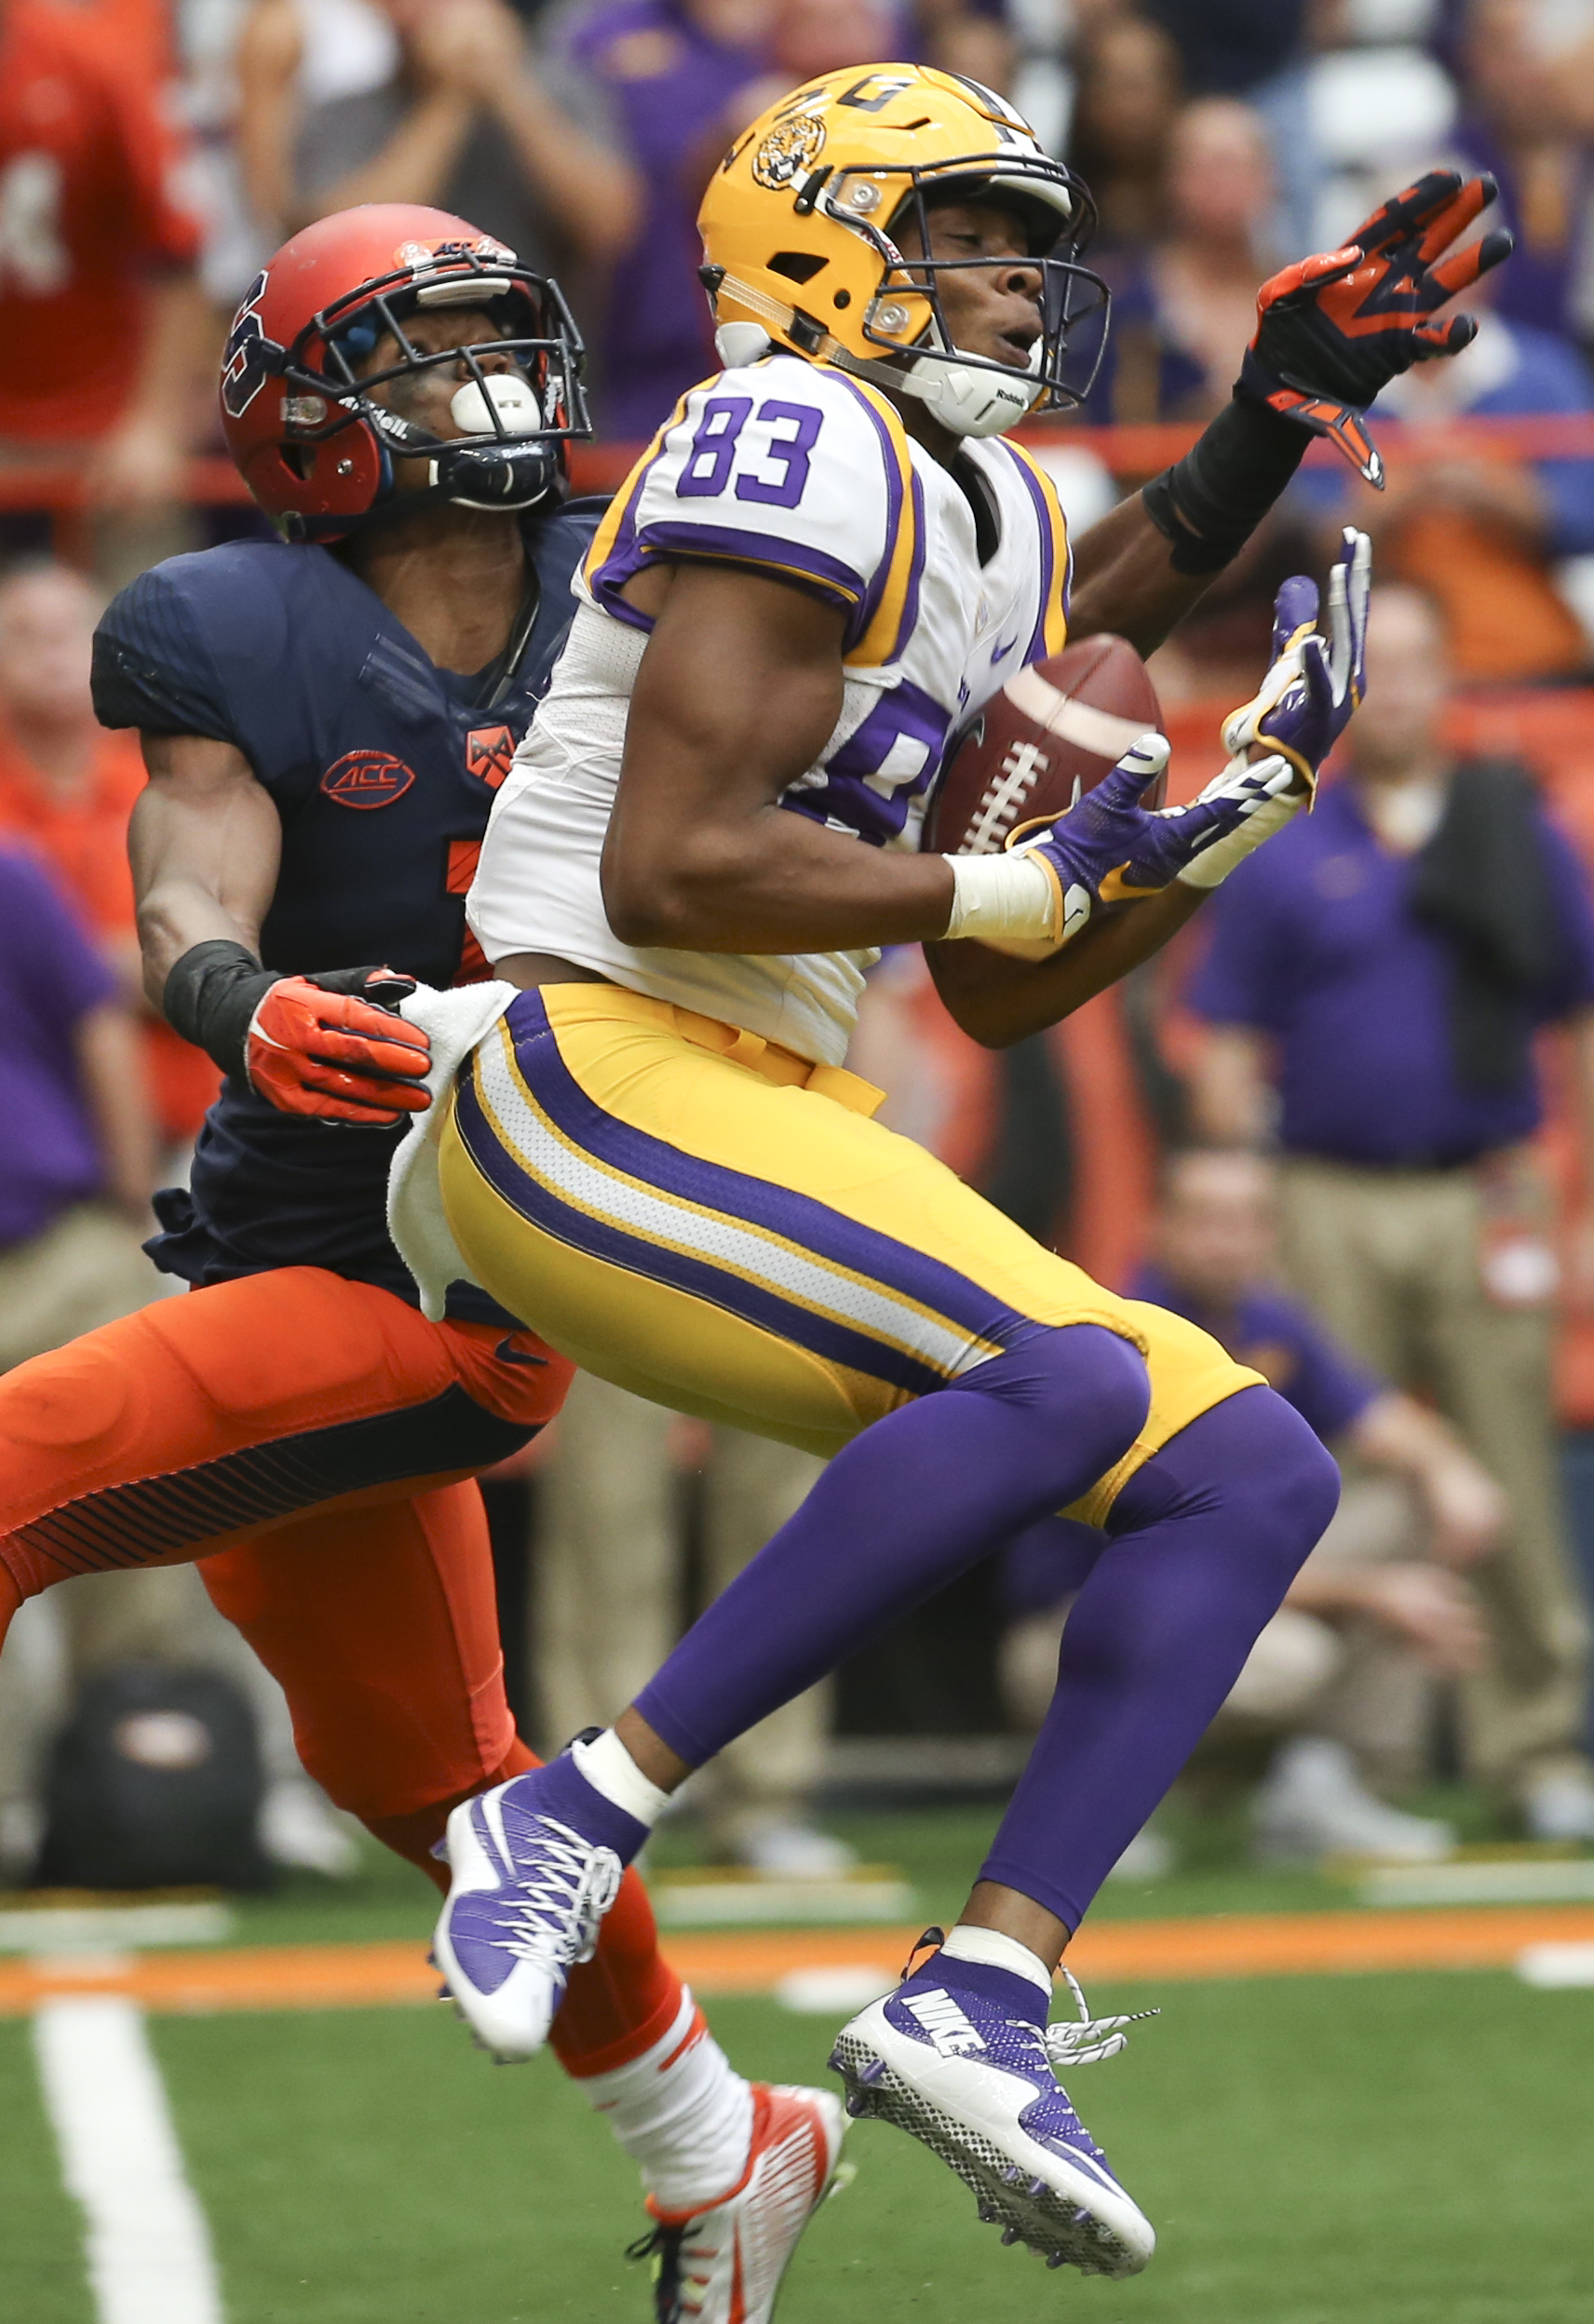 LSU wide receiver Travin Dural (83) makes a catch in front of Syracuse cornerback Julian Whigham (1) during the second half of an NCAA college football game on Saturday, Sept. 26, 2015, in Syracuse, N.Y. (AP Photo/Mike Groll)